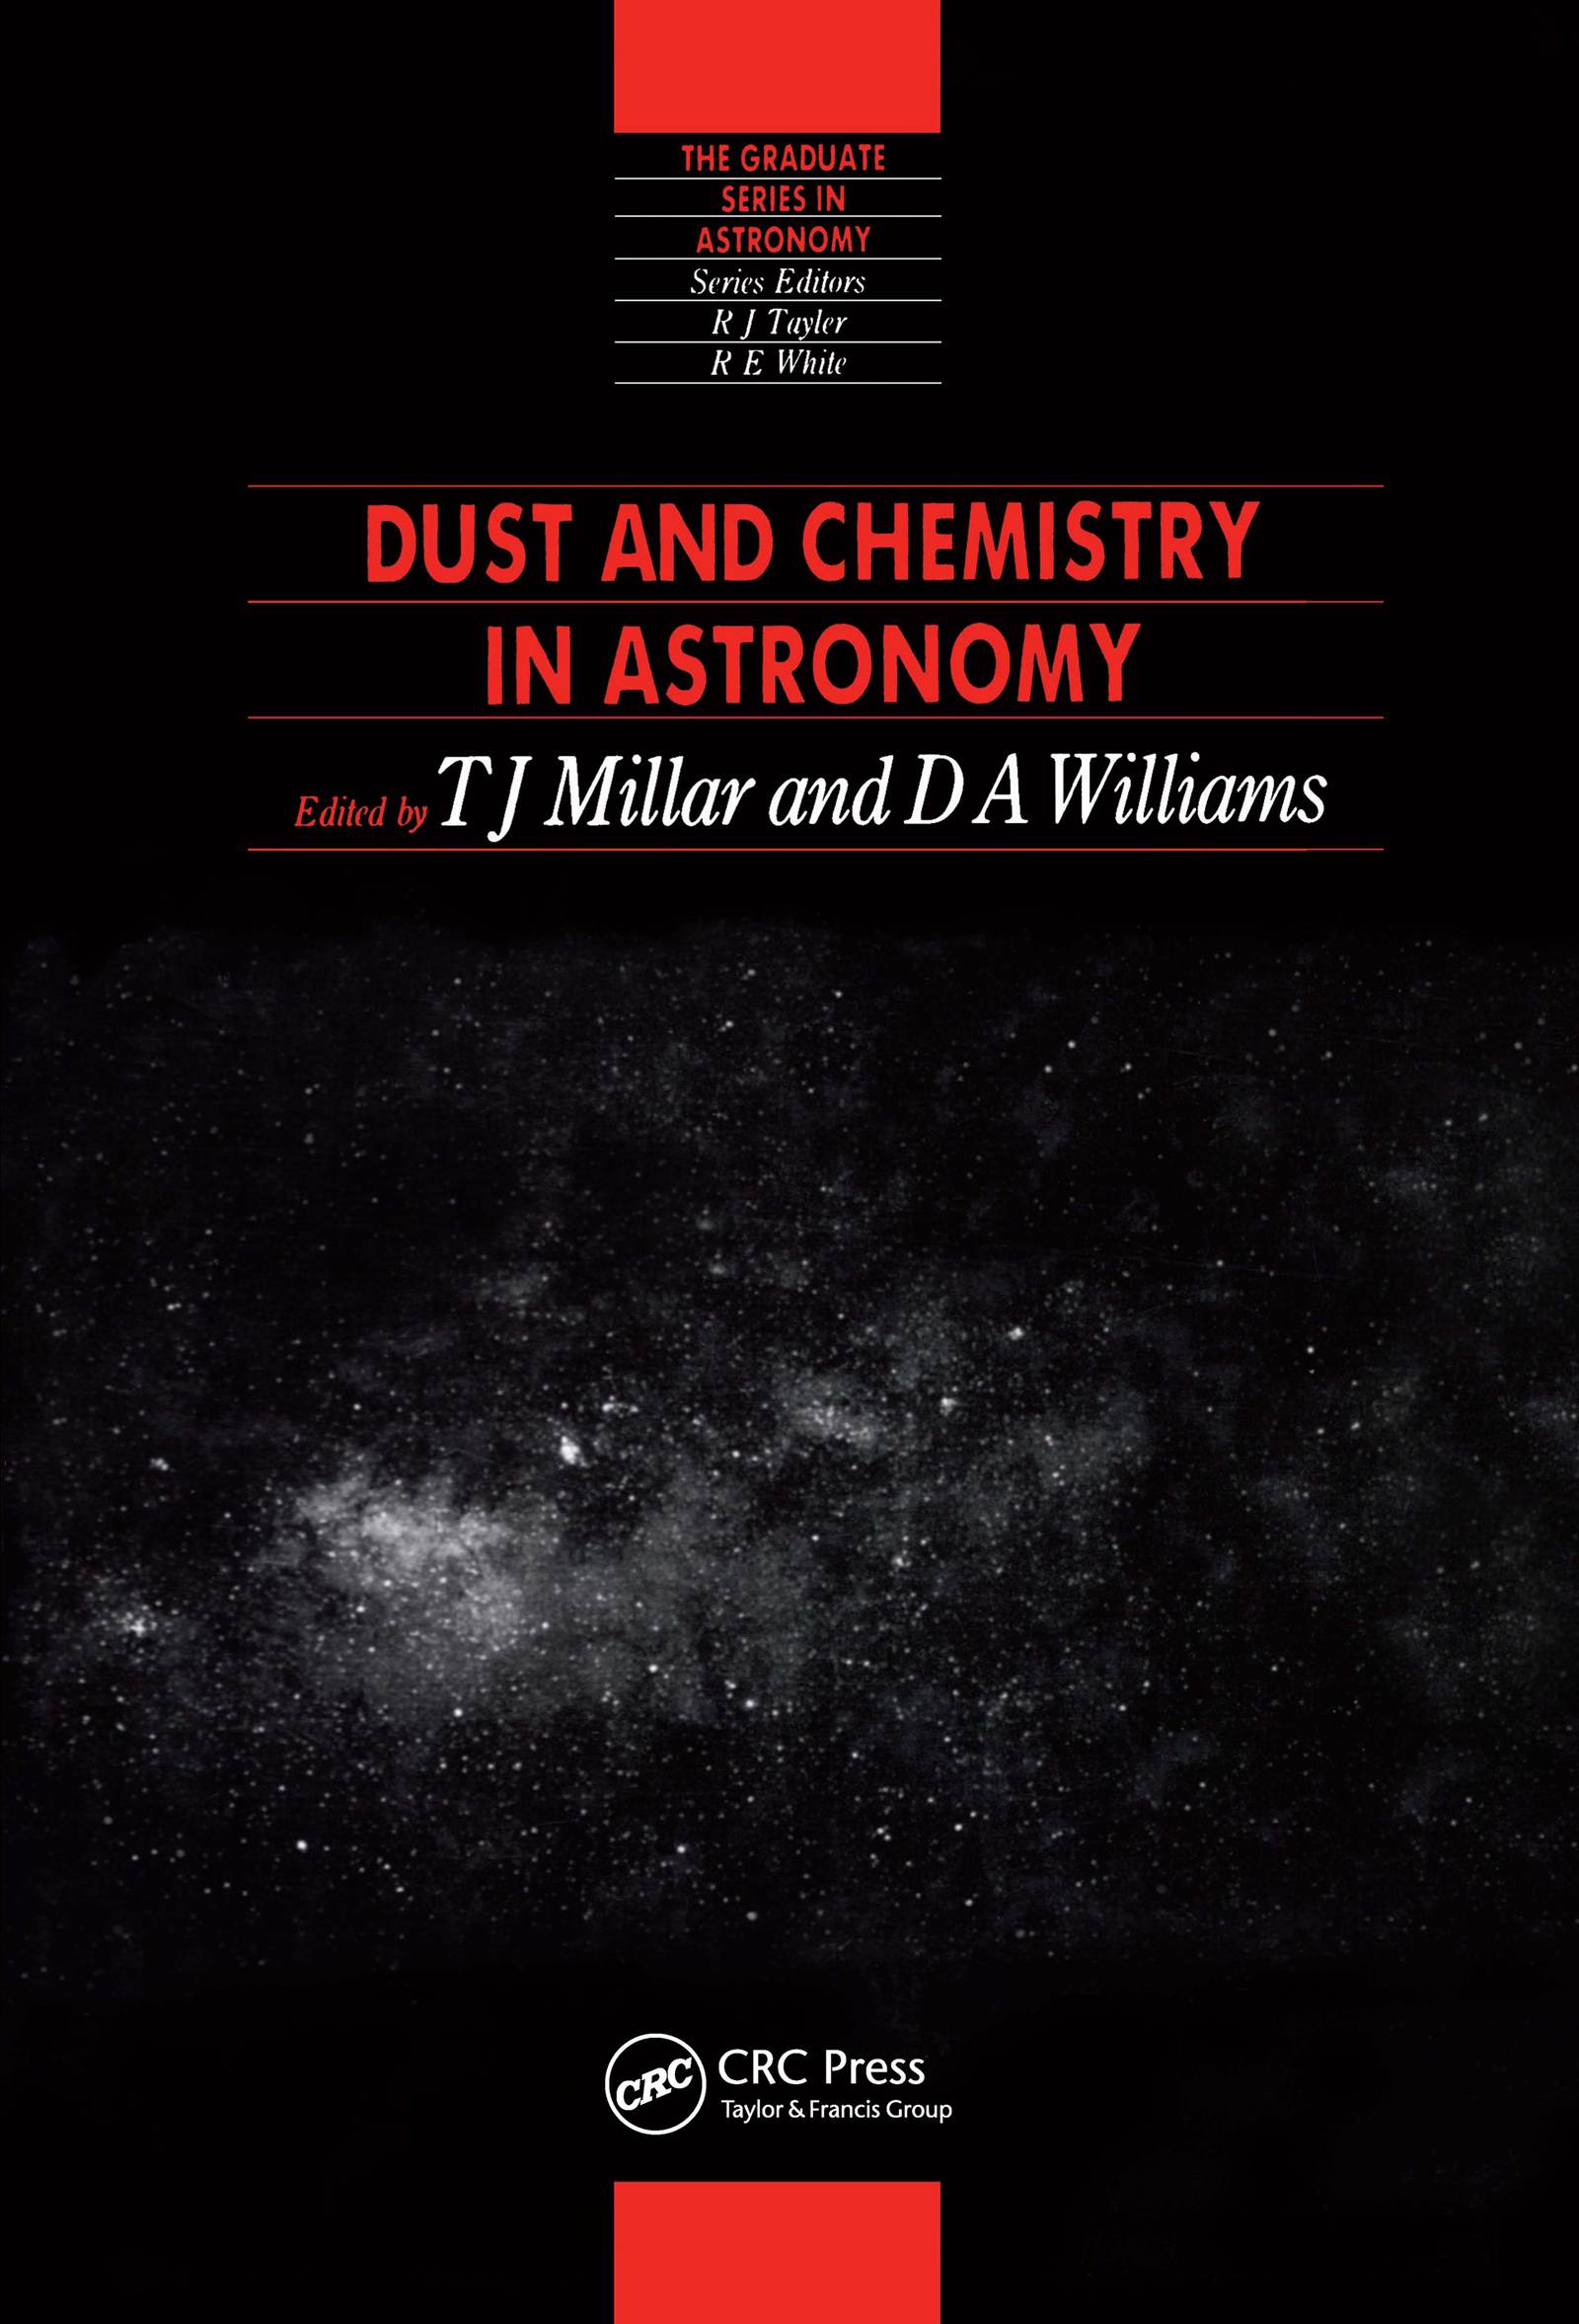 Dust and Chemistry in Astronomy book cover